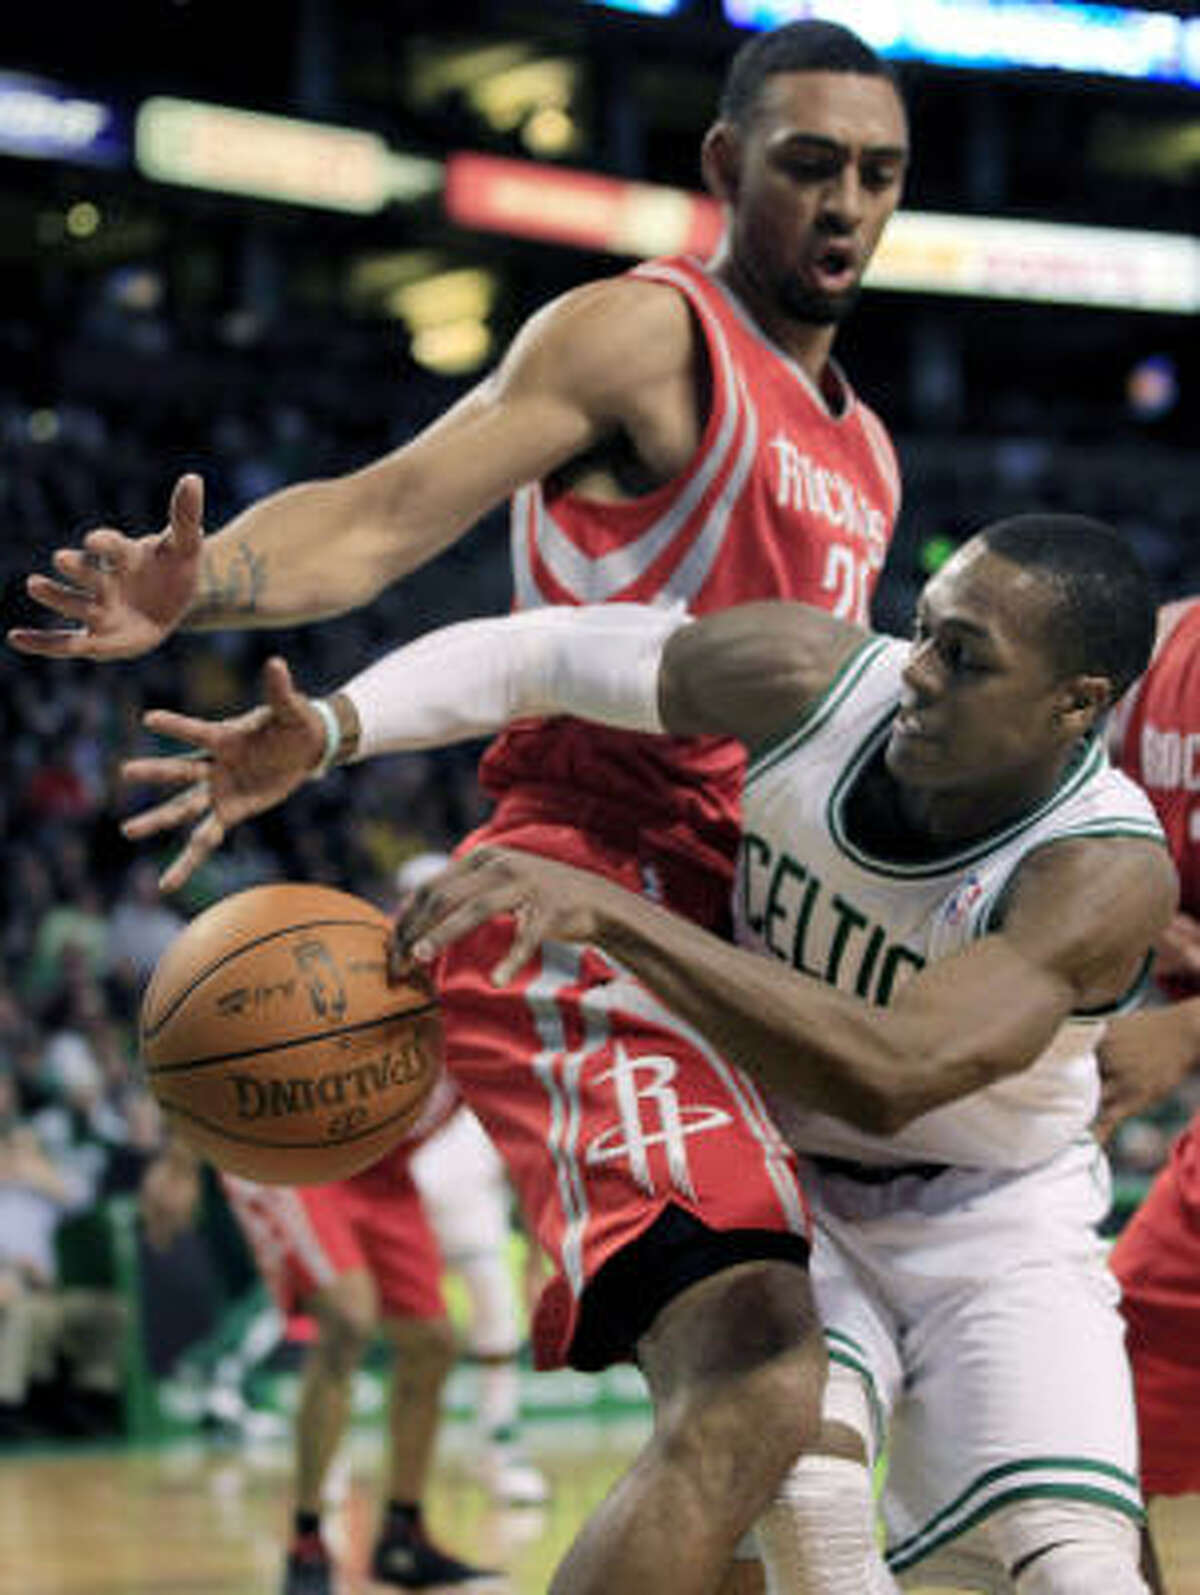 Celtics guard Rajon Rondo, right, dumps the ball off as he is pressured by Rockets forward Jared Jefferies.